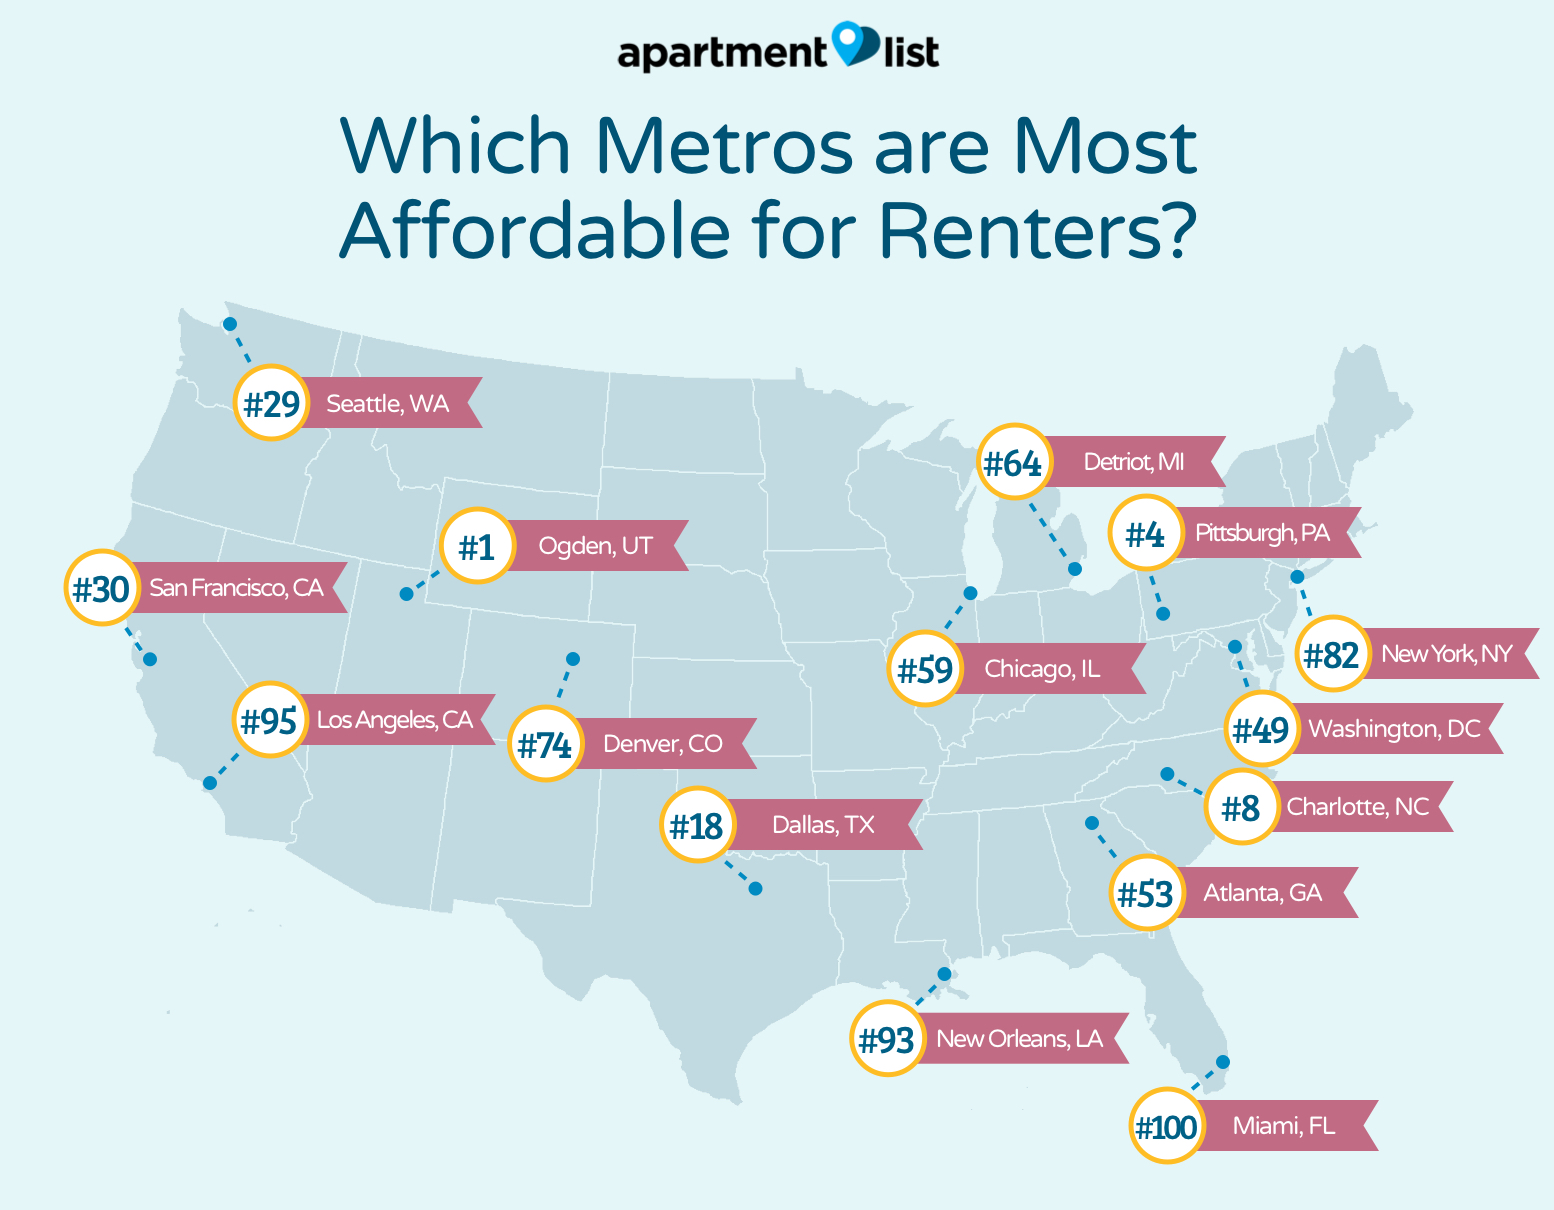 Raleigh, Charlotte among top 10 most affordable metros for renters, study says